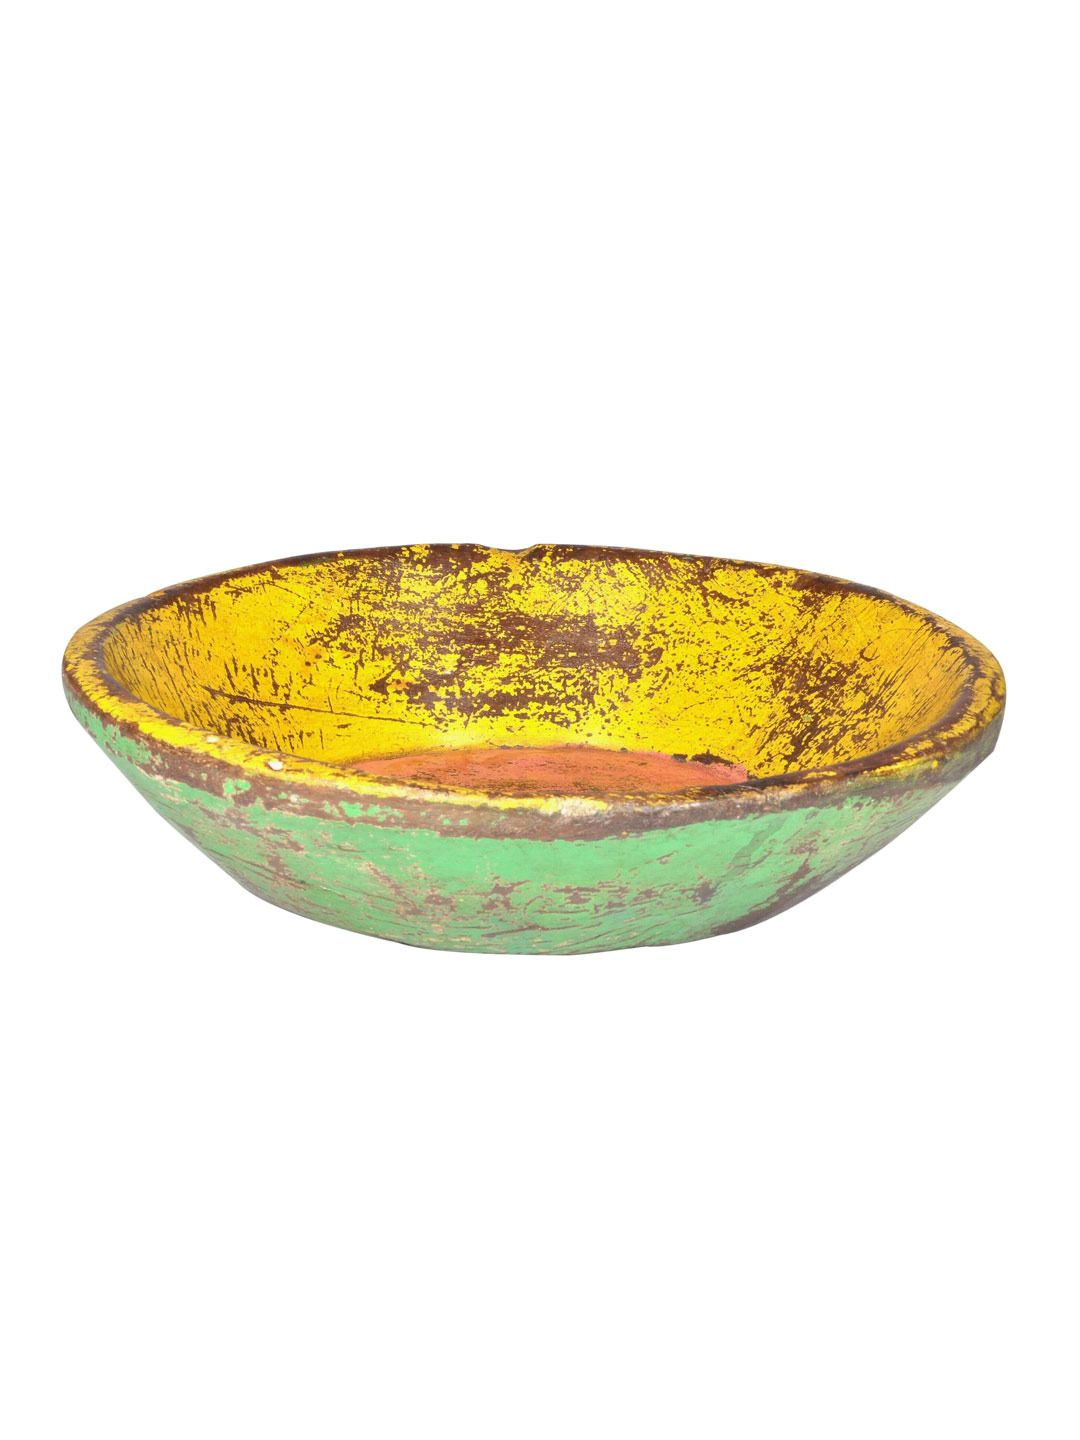 Yellow Decorative Bowl Decorative Bowls Set Of 4 $52 Gilt  Bowls For Here And There